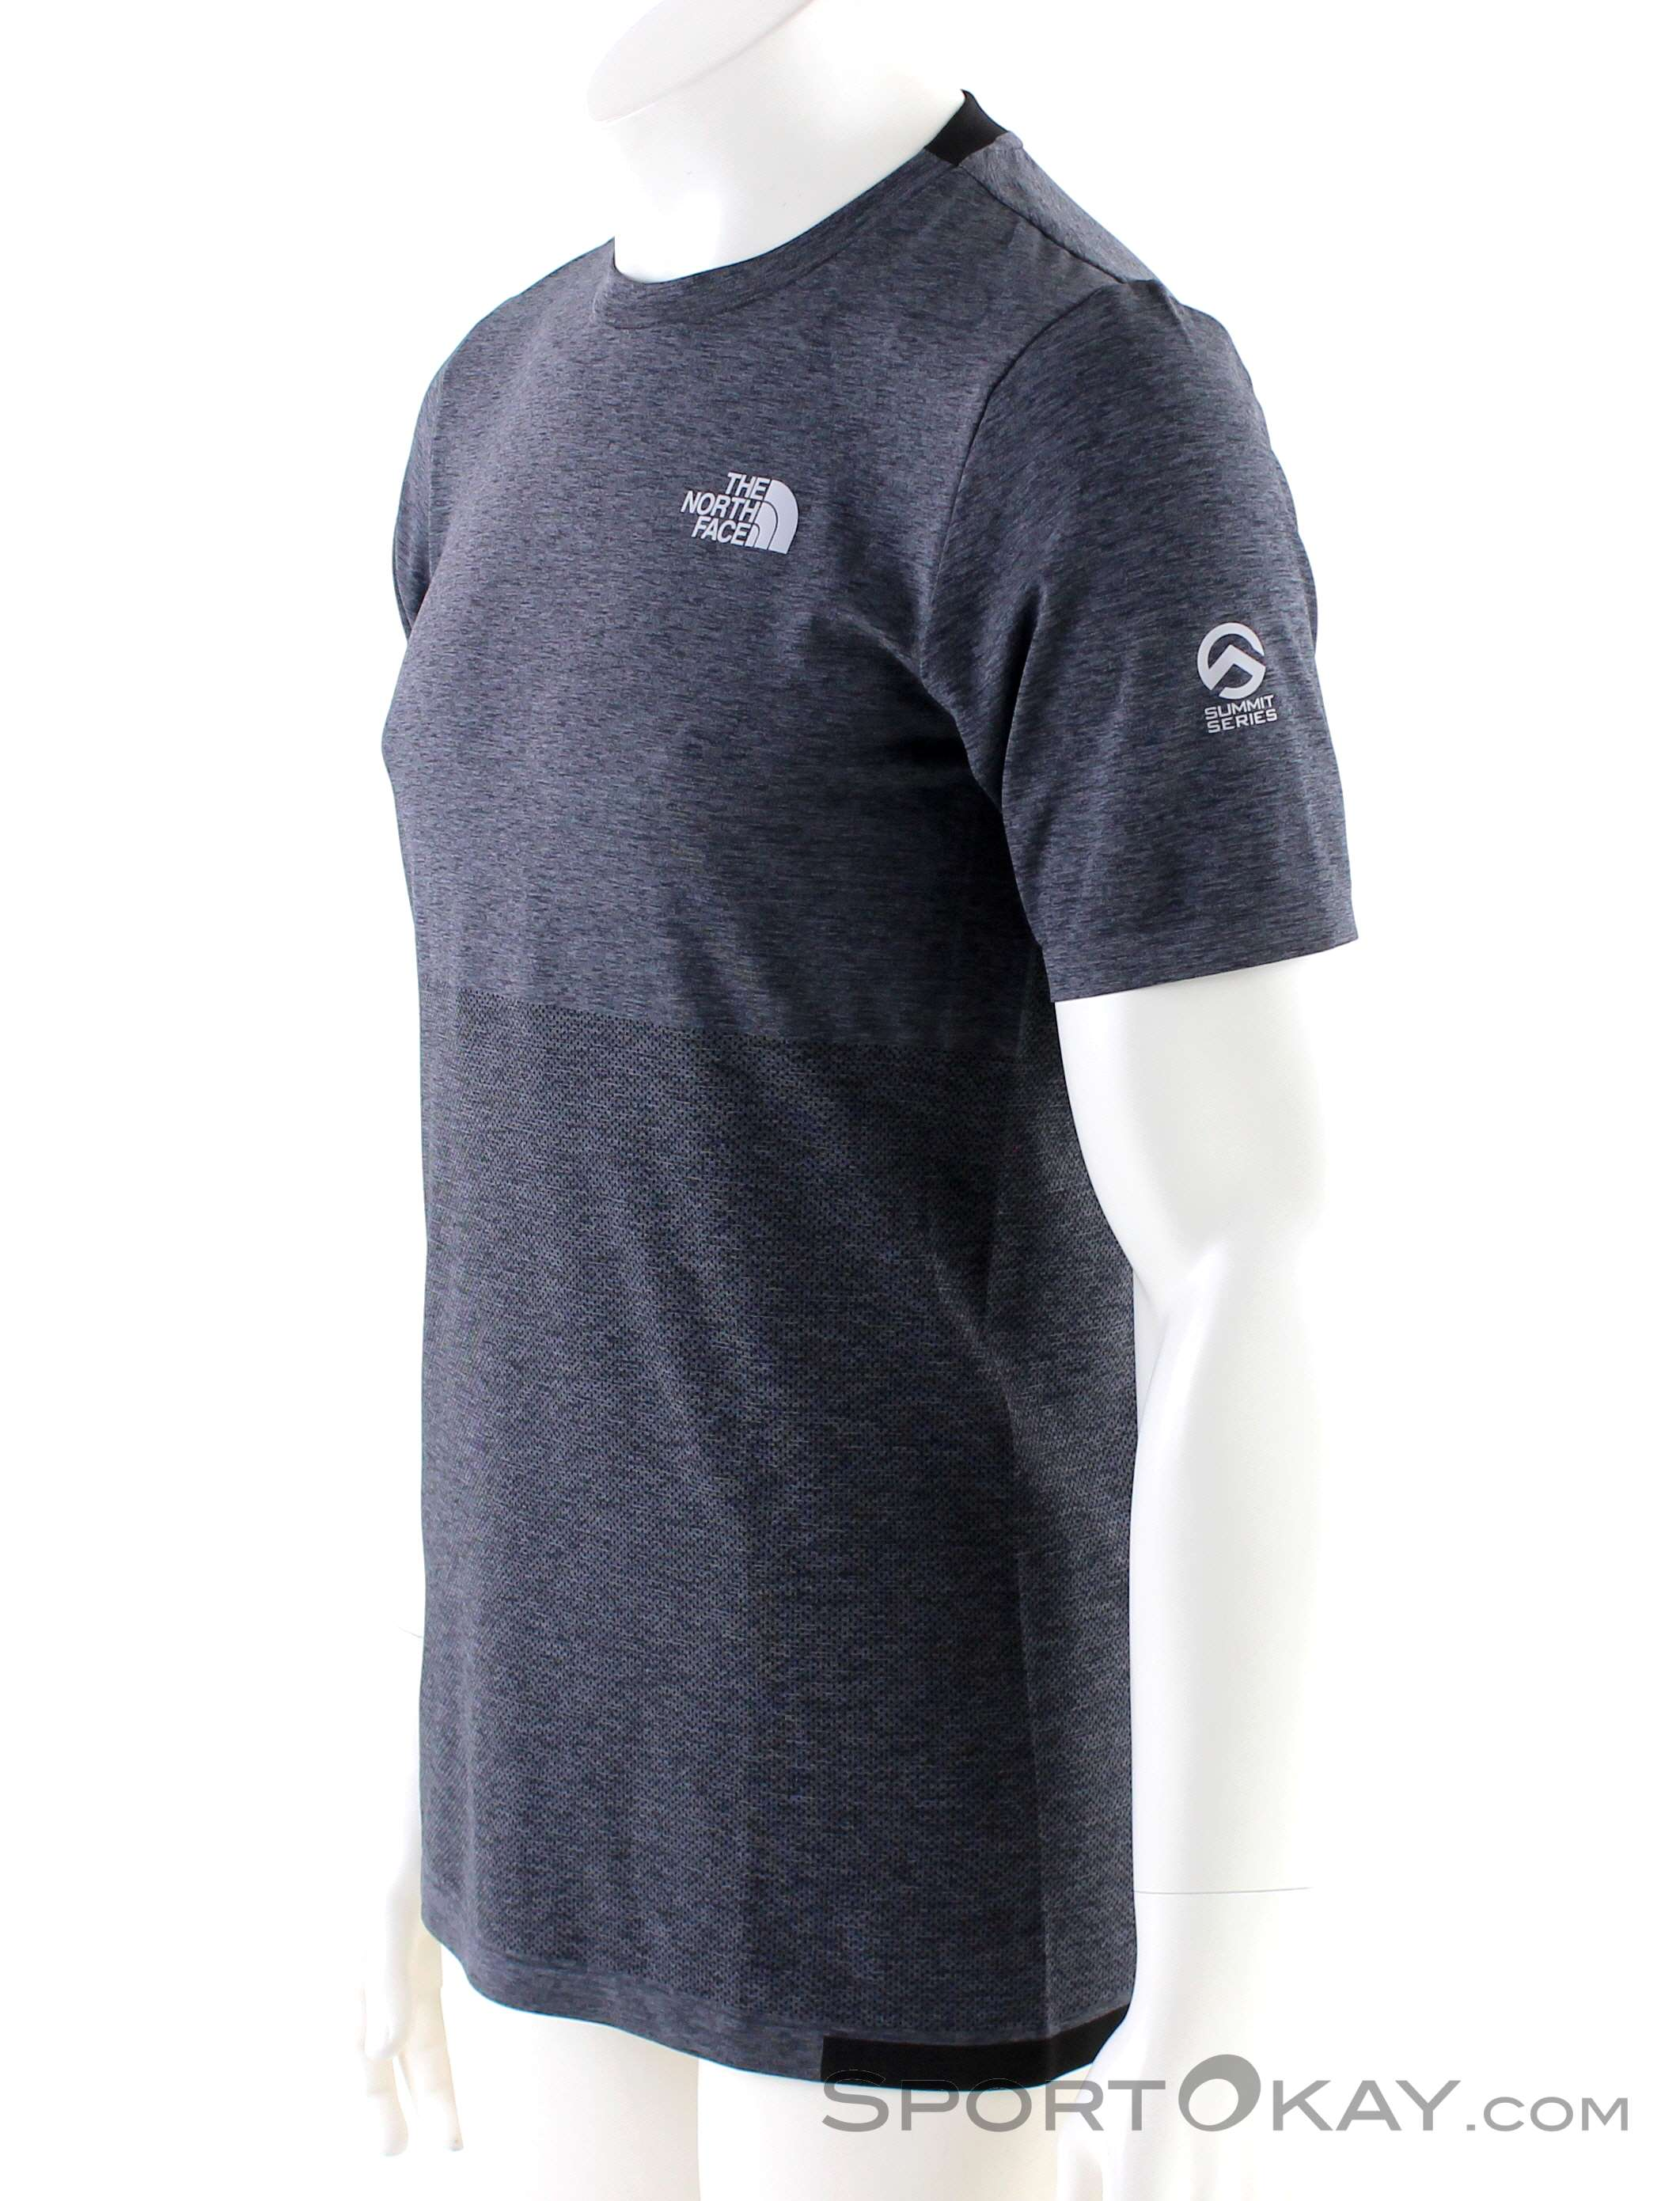 ad14aa41454261 The North Face L1 SS Mens Functional Shirt - Functional Clothing ...